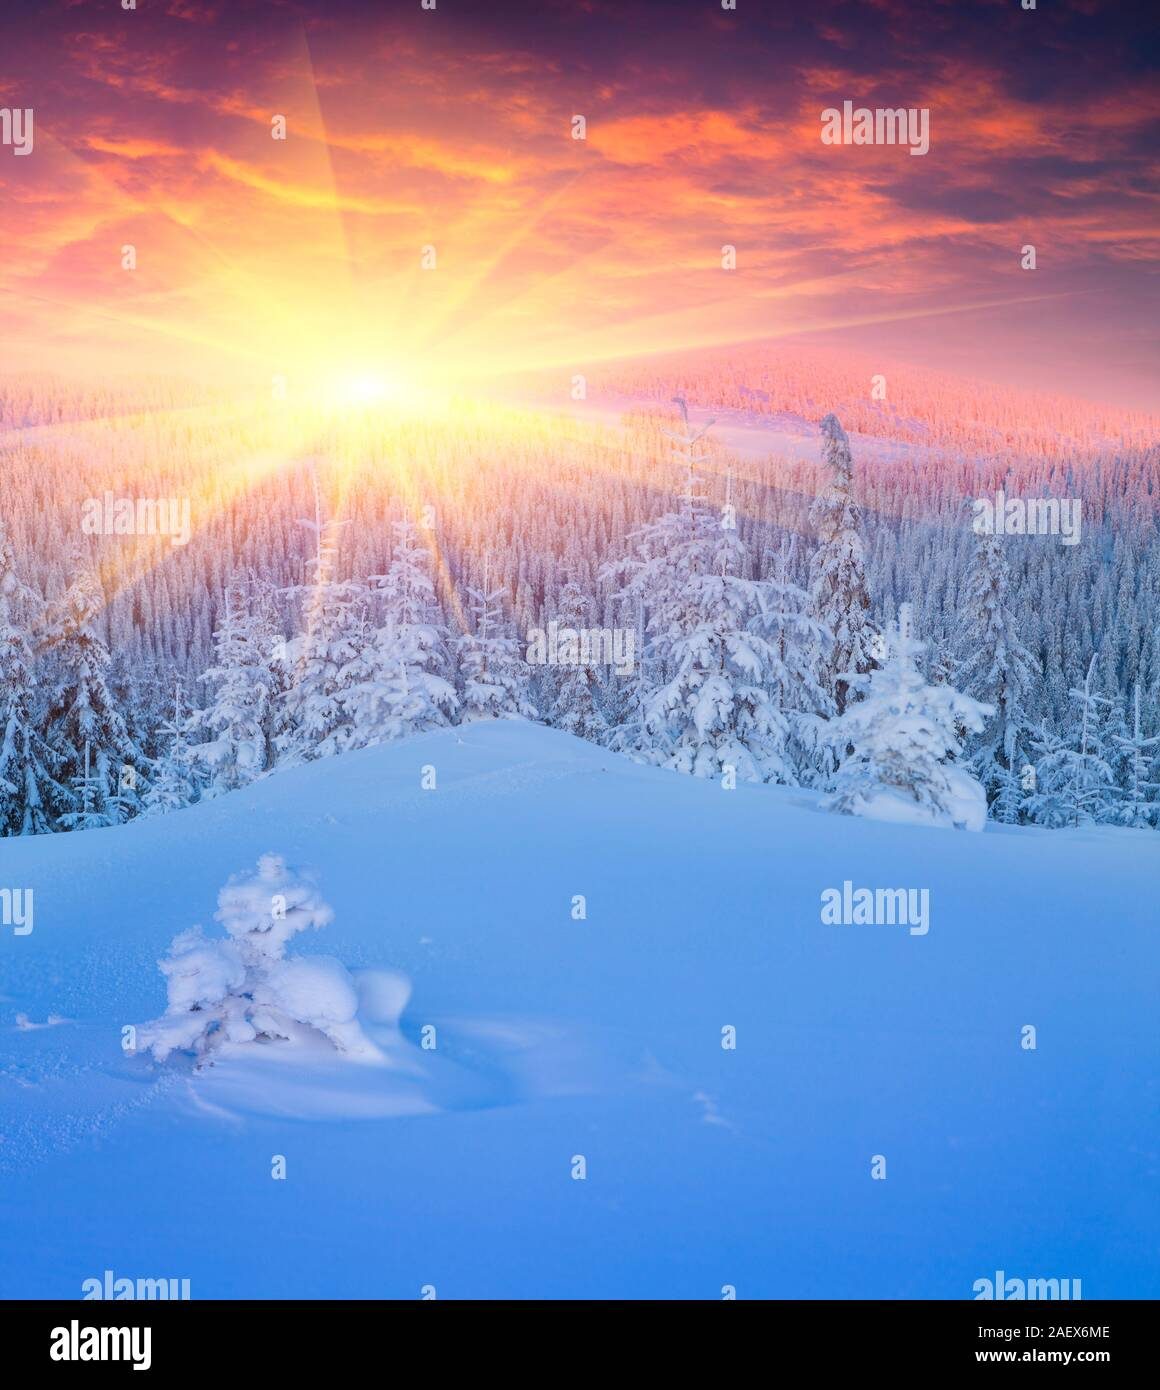 Colorful winter scene in Carpathian mountains. First sunlight glowing fresh snow and fir trees in the frosty sunrise. Stock Photo